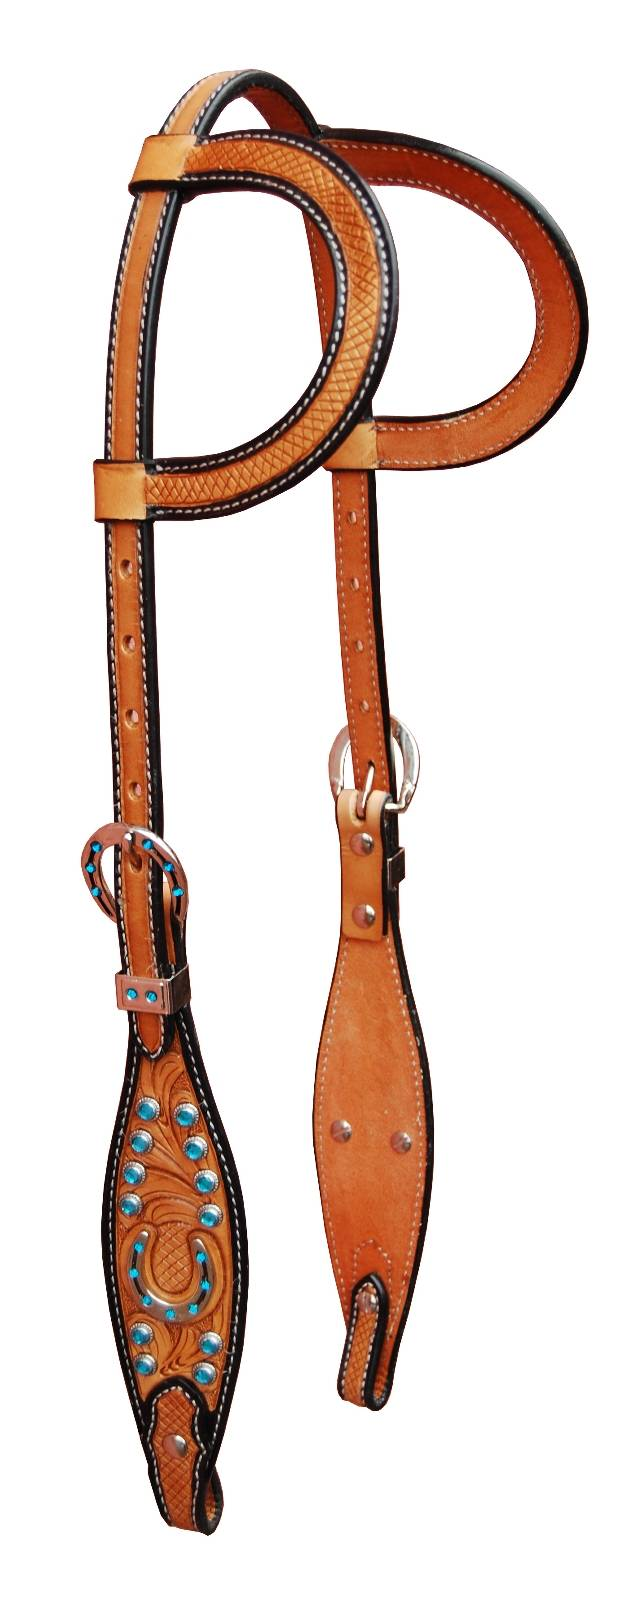 Turn-Two Equine Stampede Double Ear Headstall